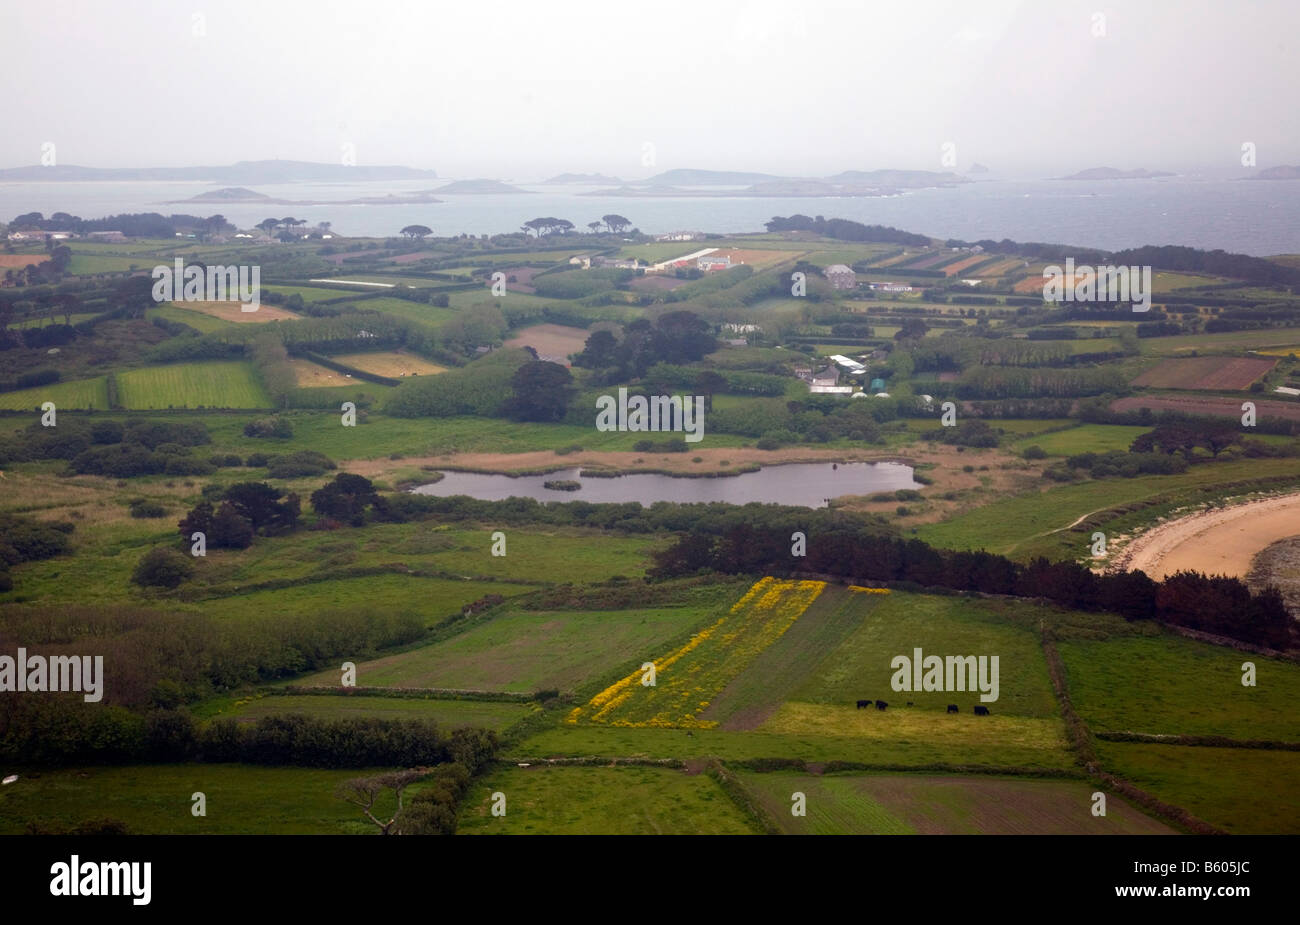 view of porth hellick st mary s Isles of Scilly from the helicopter - Stock Image